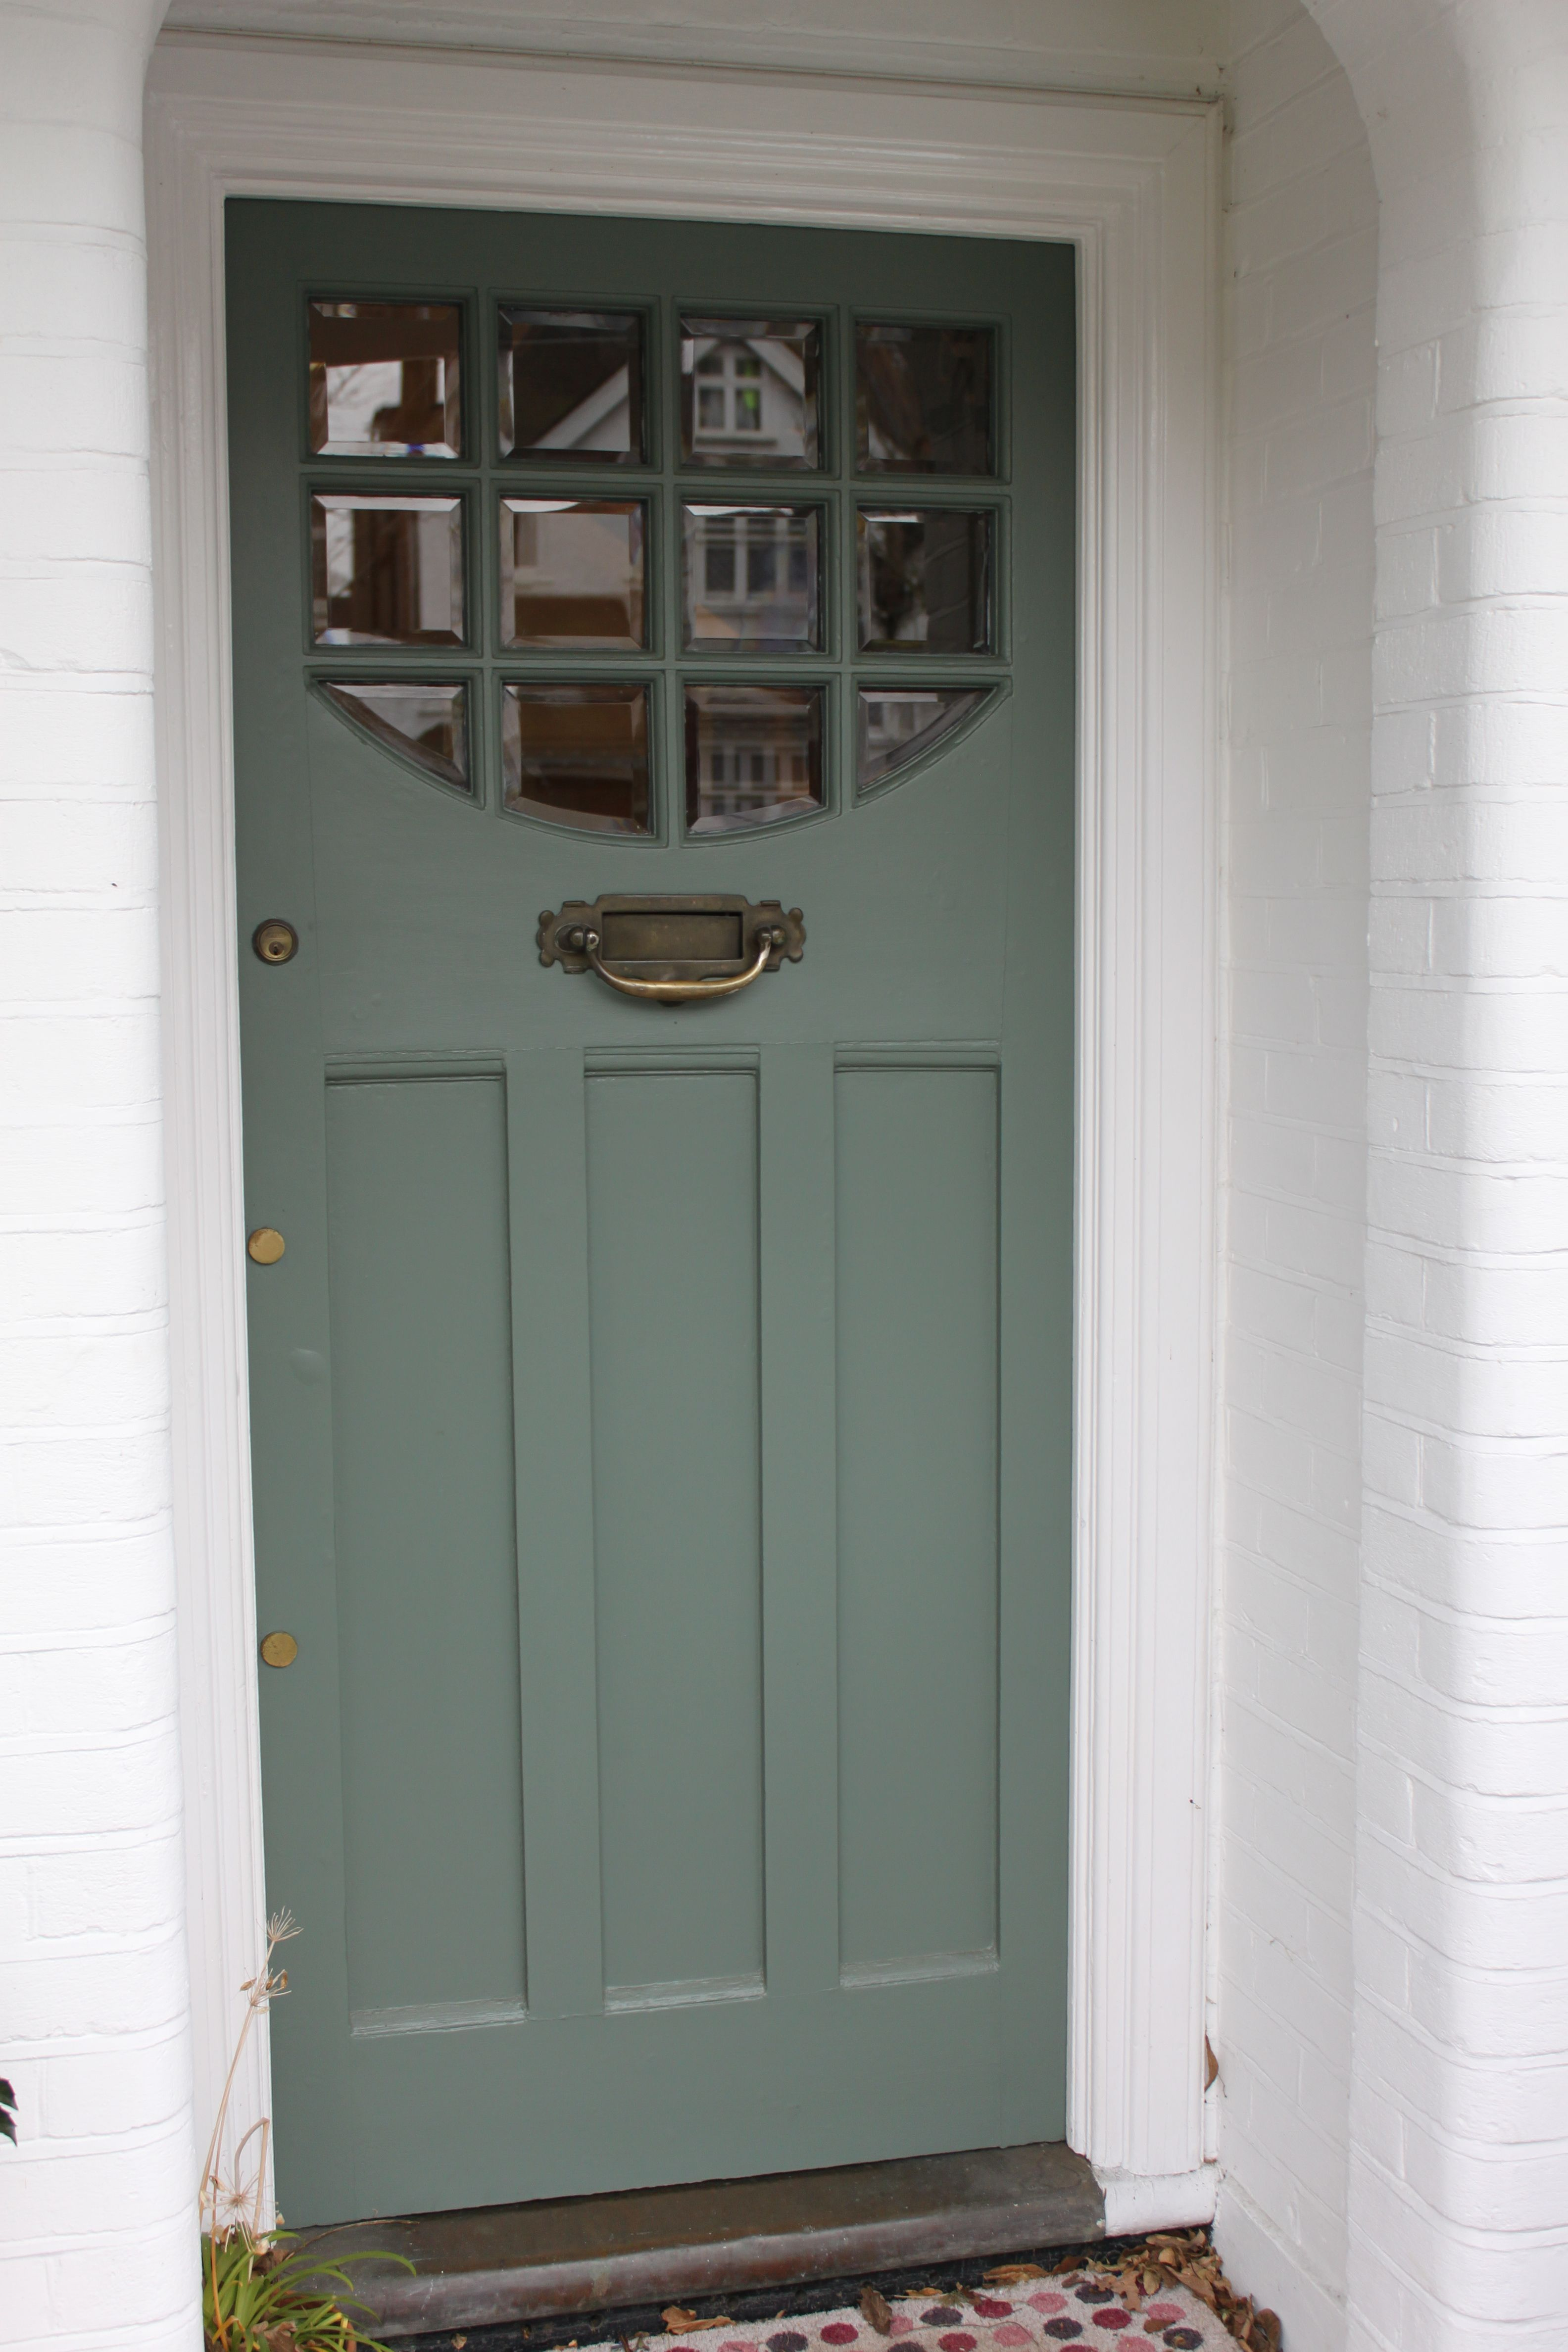 1920s1930s front door with beveled clear glass in south west 1920s1930s front door with beveled clear glass in south west london rubansaba